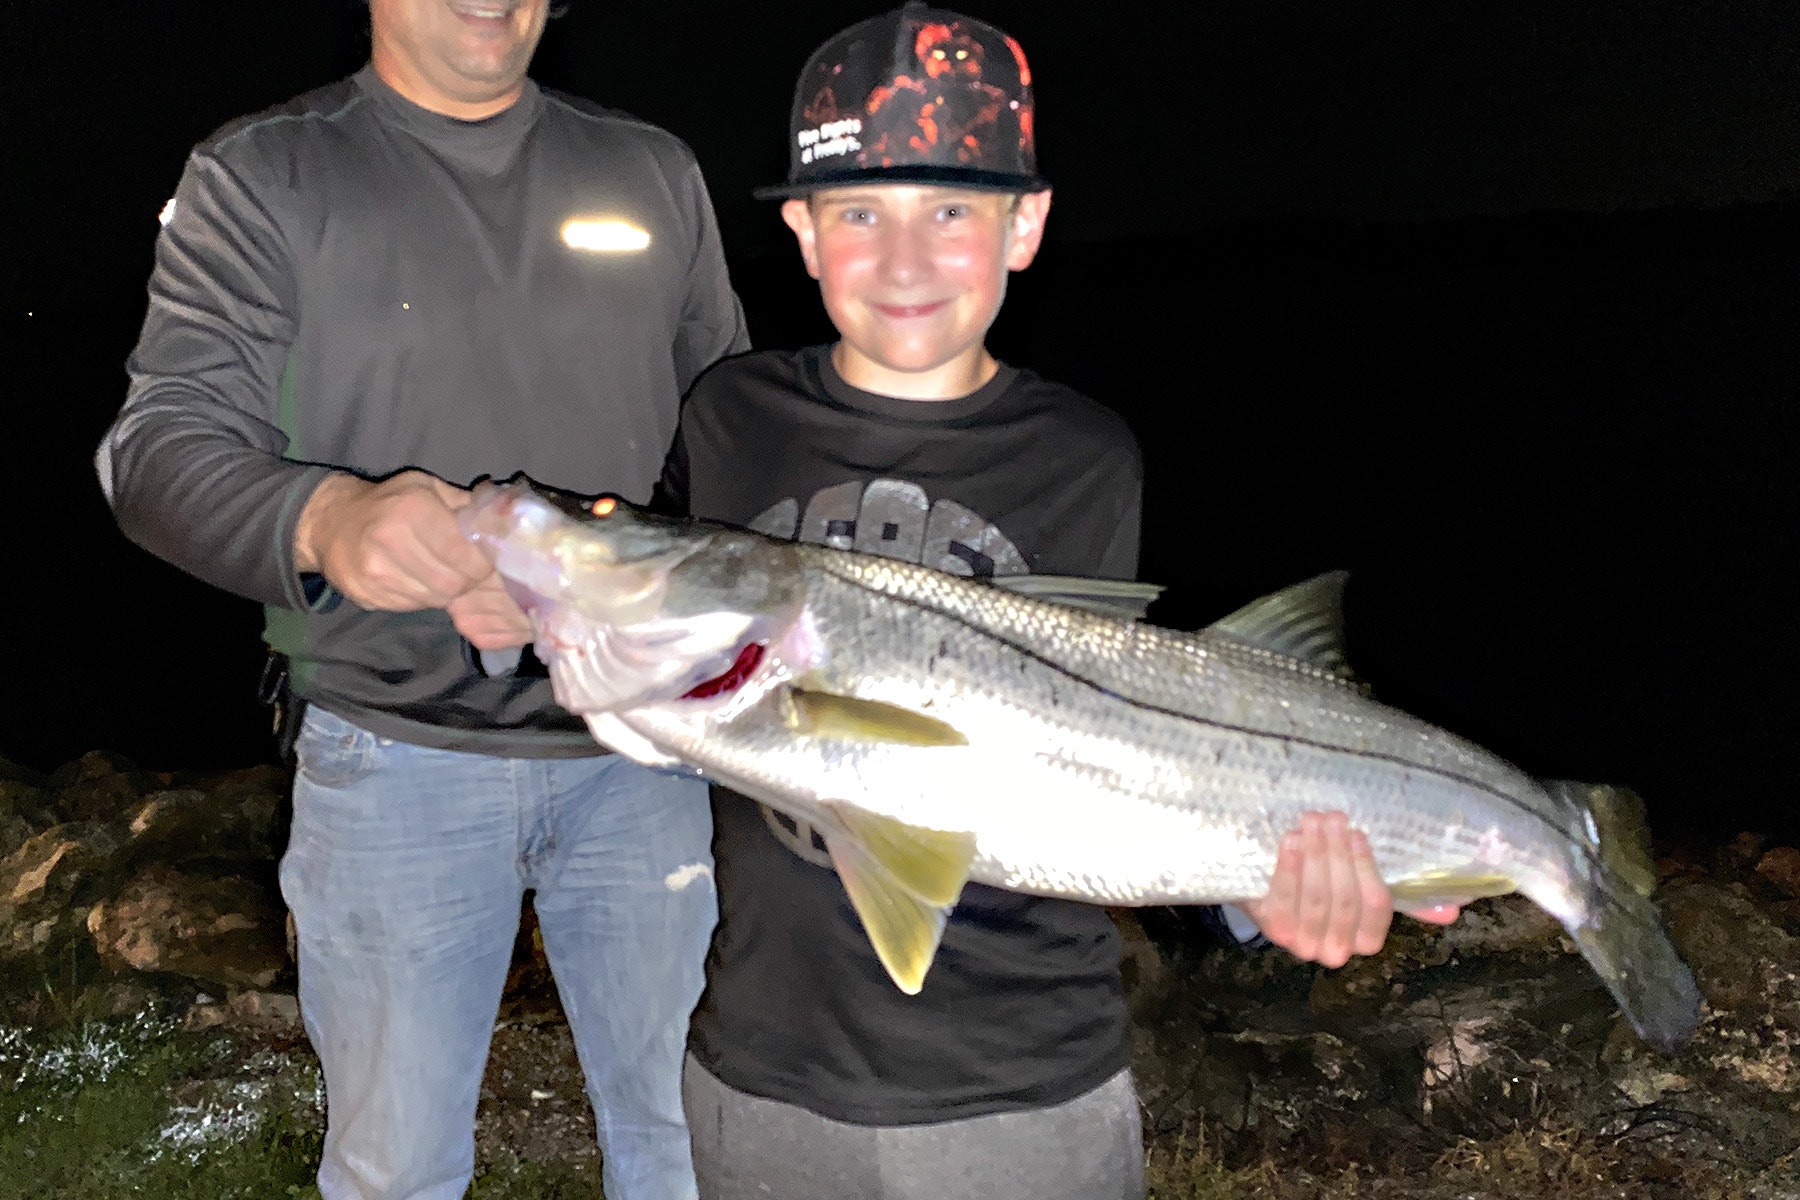 Young boy holding fish with man in background at night